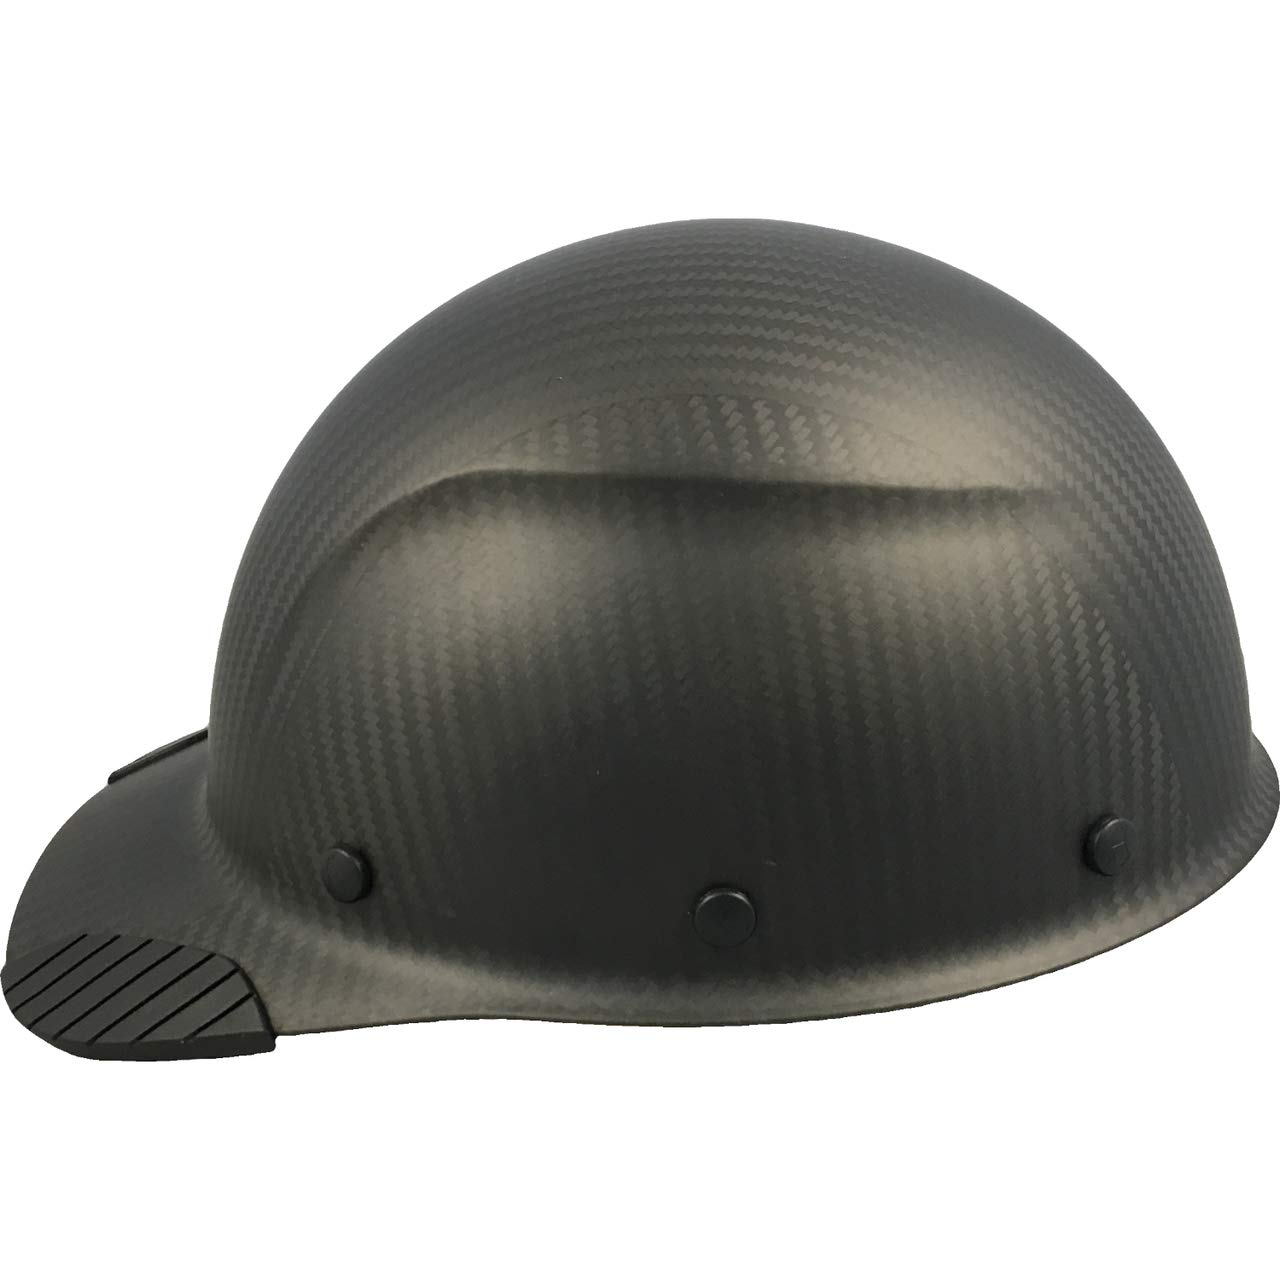 DAX Actual Carbon Fiber Cap Style Hard Hat - Matte Black by DAX (Image #2)